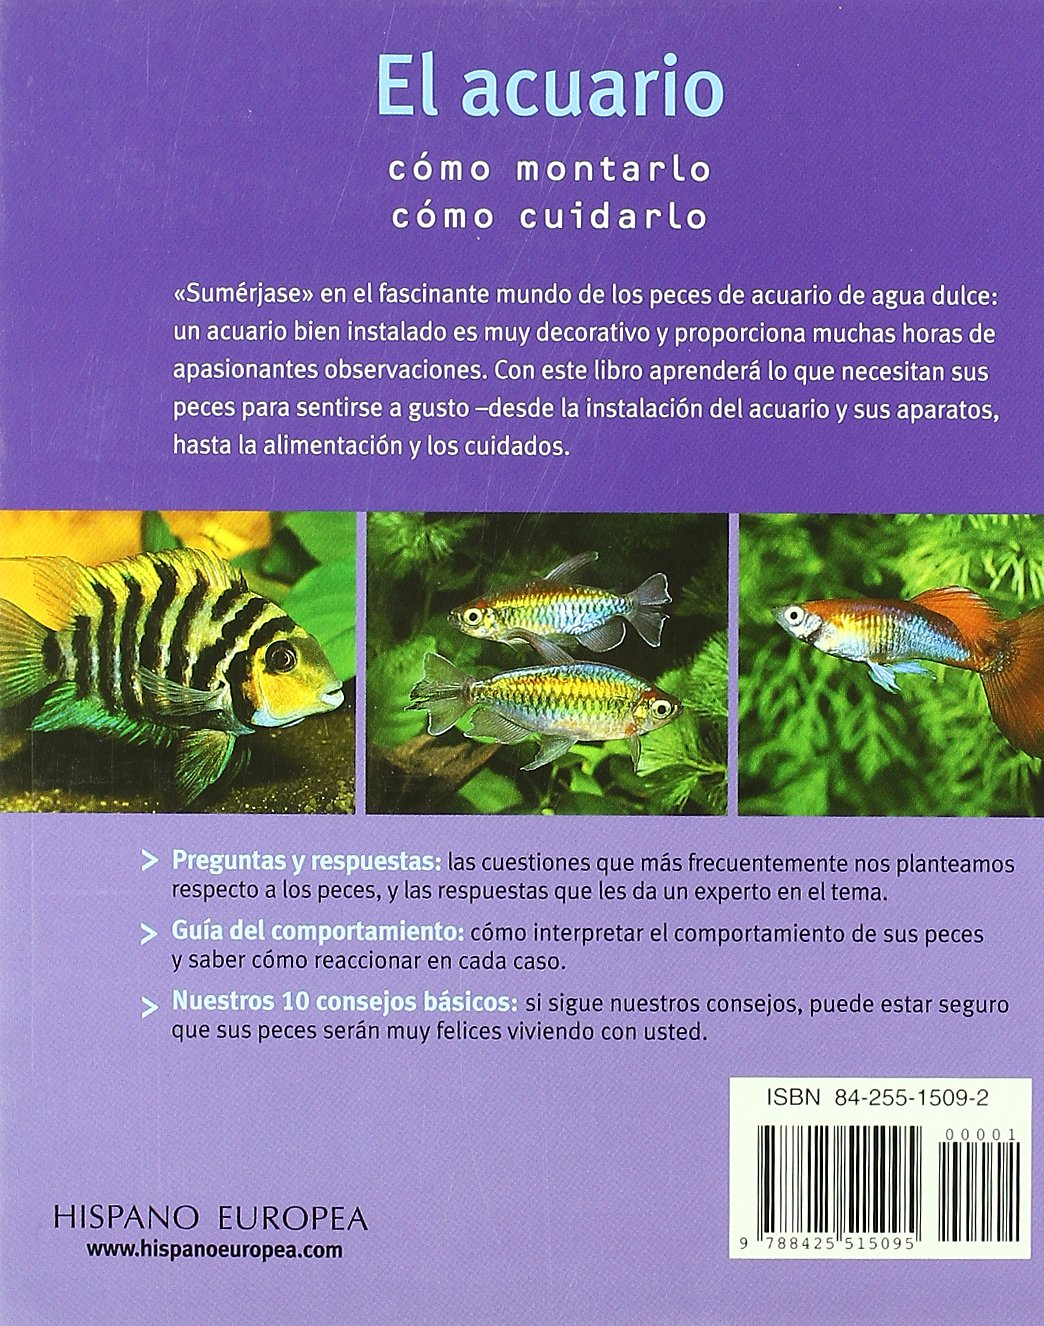 El acuario sencillo y fascinante/The simple and fascinating aquarium (Spanish Edition): Peter Stadelmann: 9788425515095: Amazon.com: Books